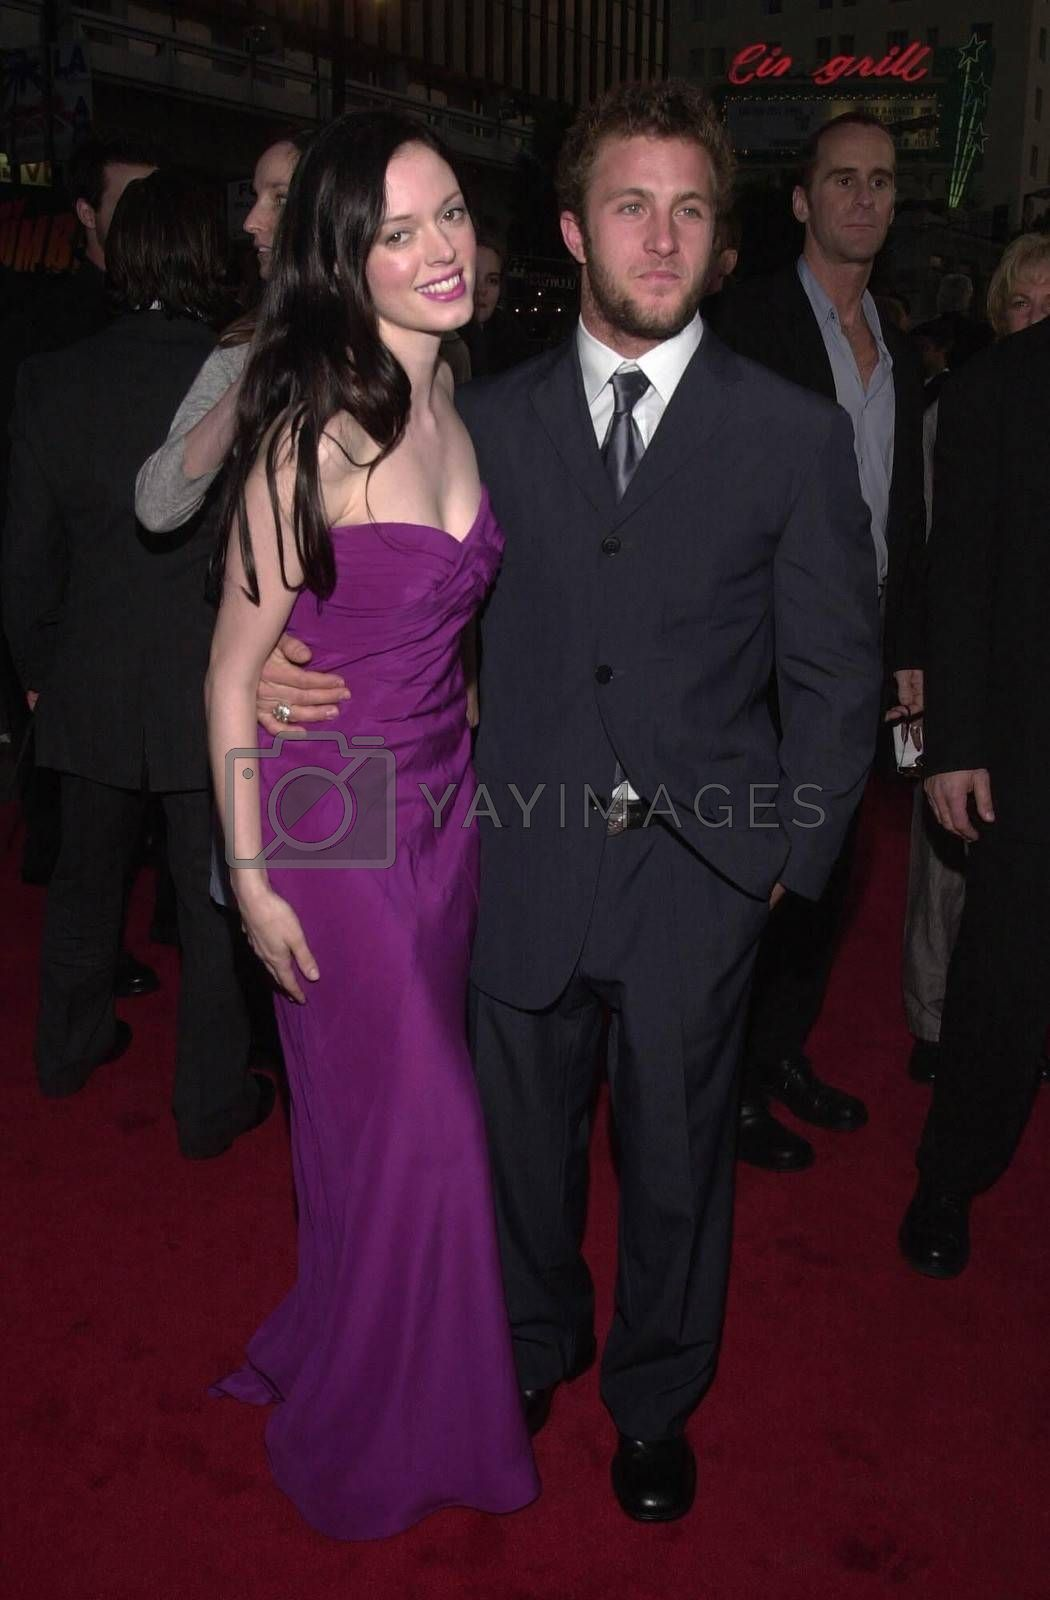 """Rose McGowan and Scott Caan at the premiere of Warner Brother's """"READY TO RUMBLE"""" in Hollywood, 04-05-00"""